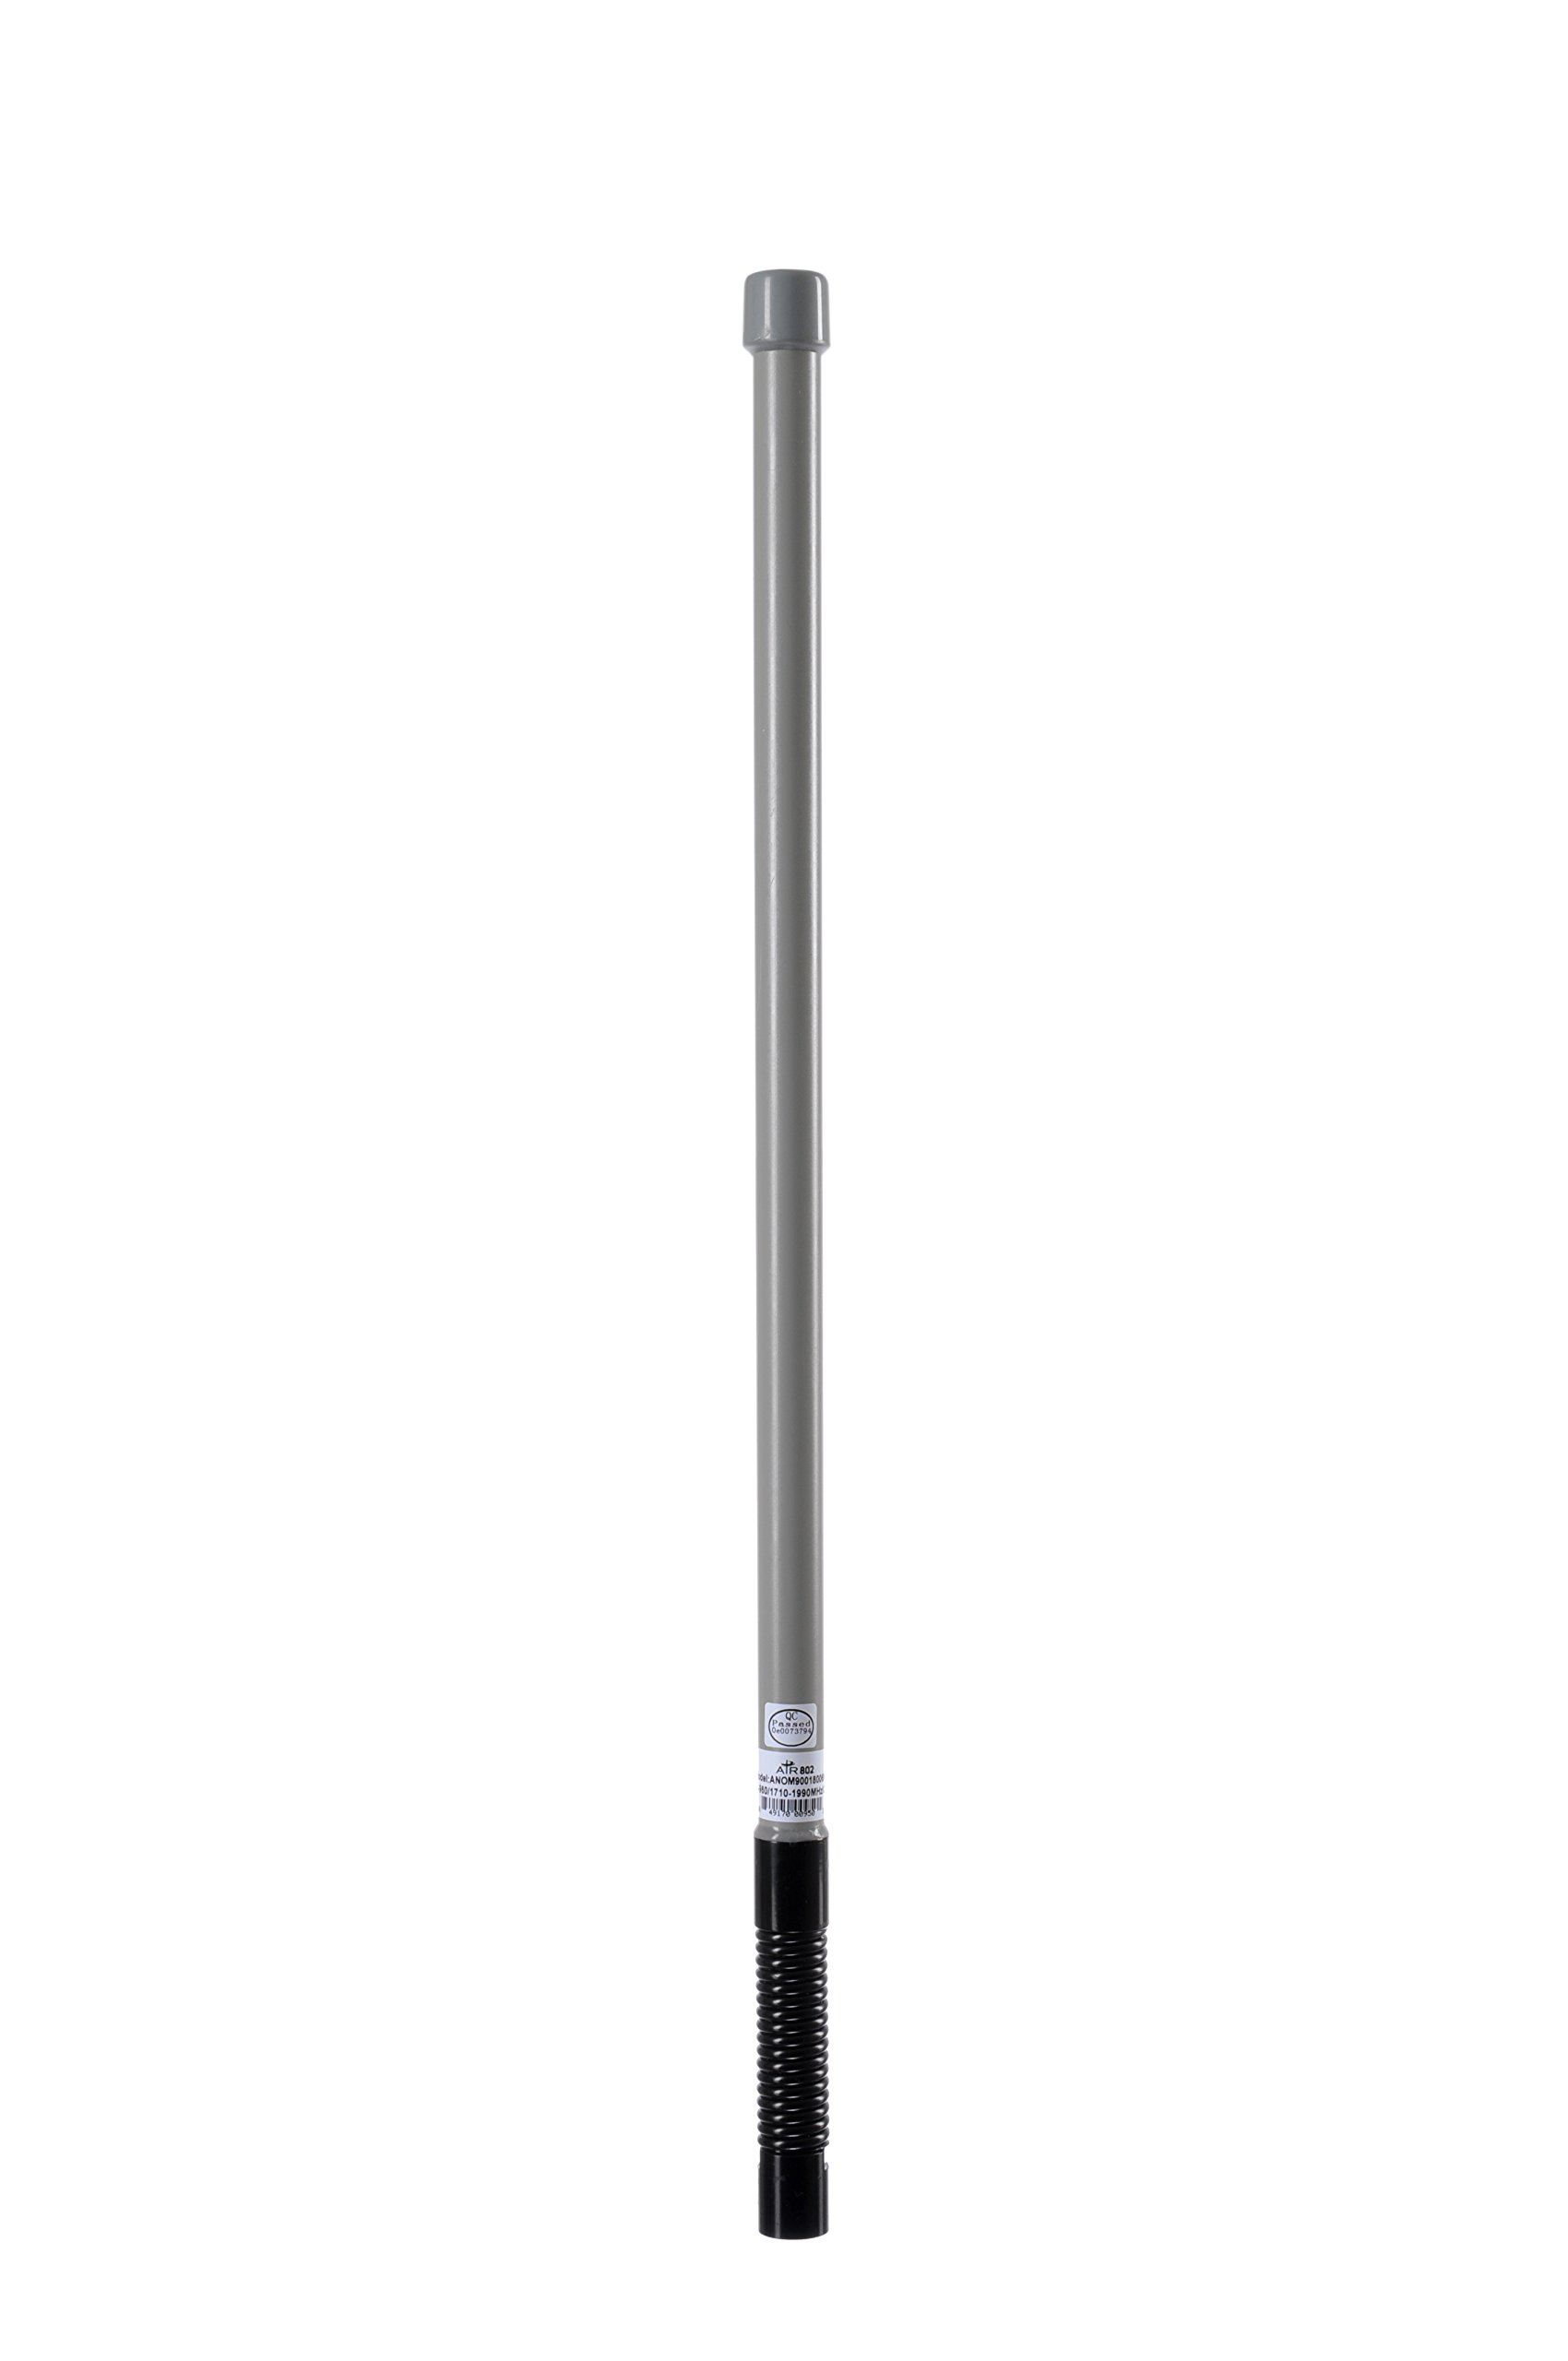 AIR802 Dual or Multi-Band Cellular Omni-Directional Antenna, 6 dBi Gain, Mesh Style with N Plug-Male and Heavy Duty Spring for 824 to 960, 1710 to 1990